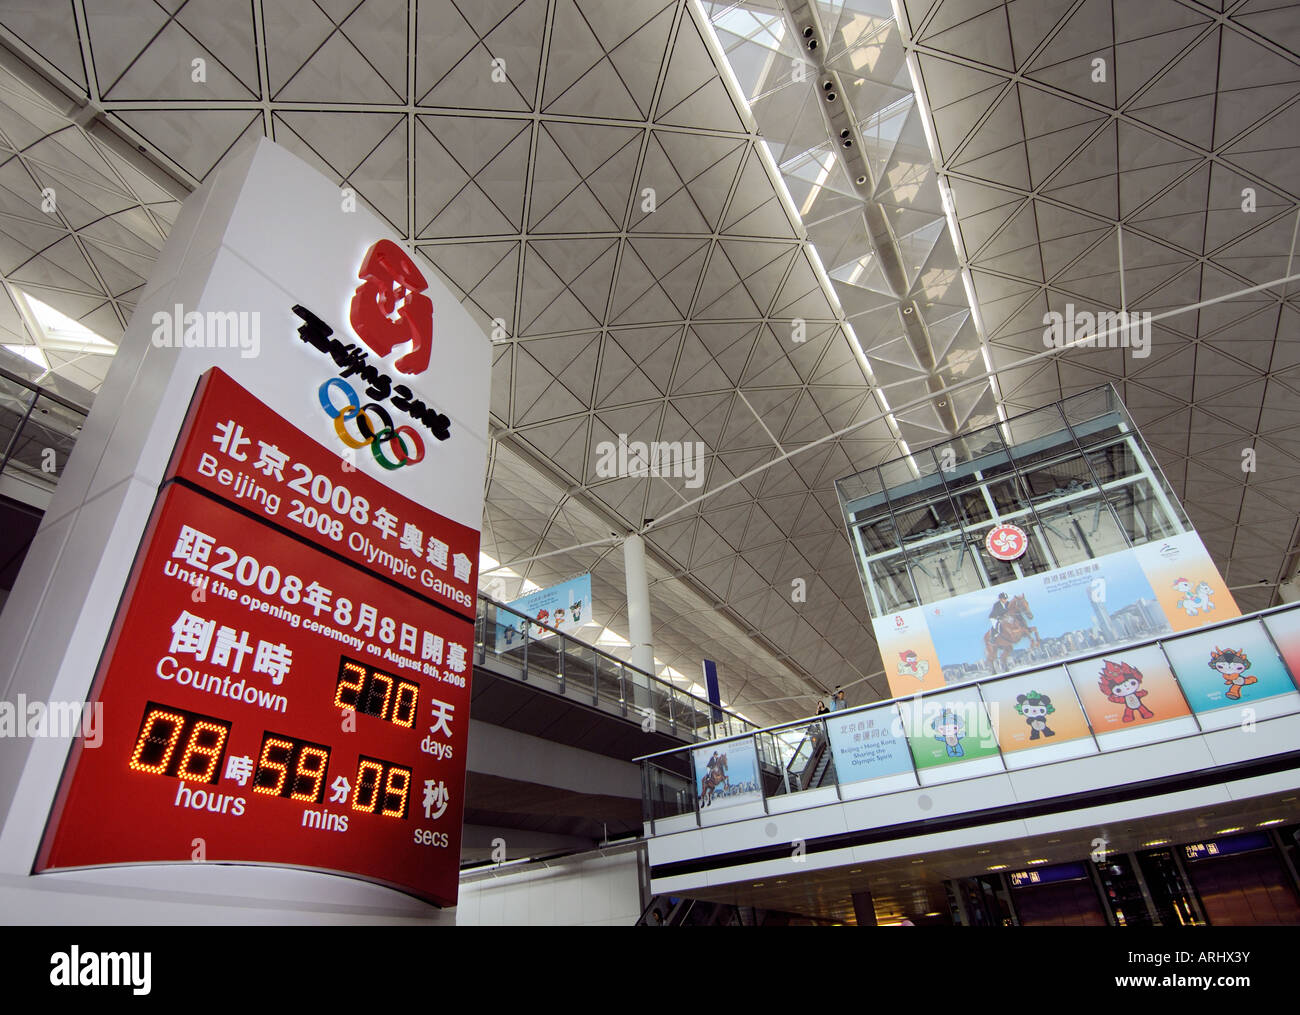 Beijing 2008 Olympics countdown board at airport. - Stock Image